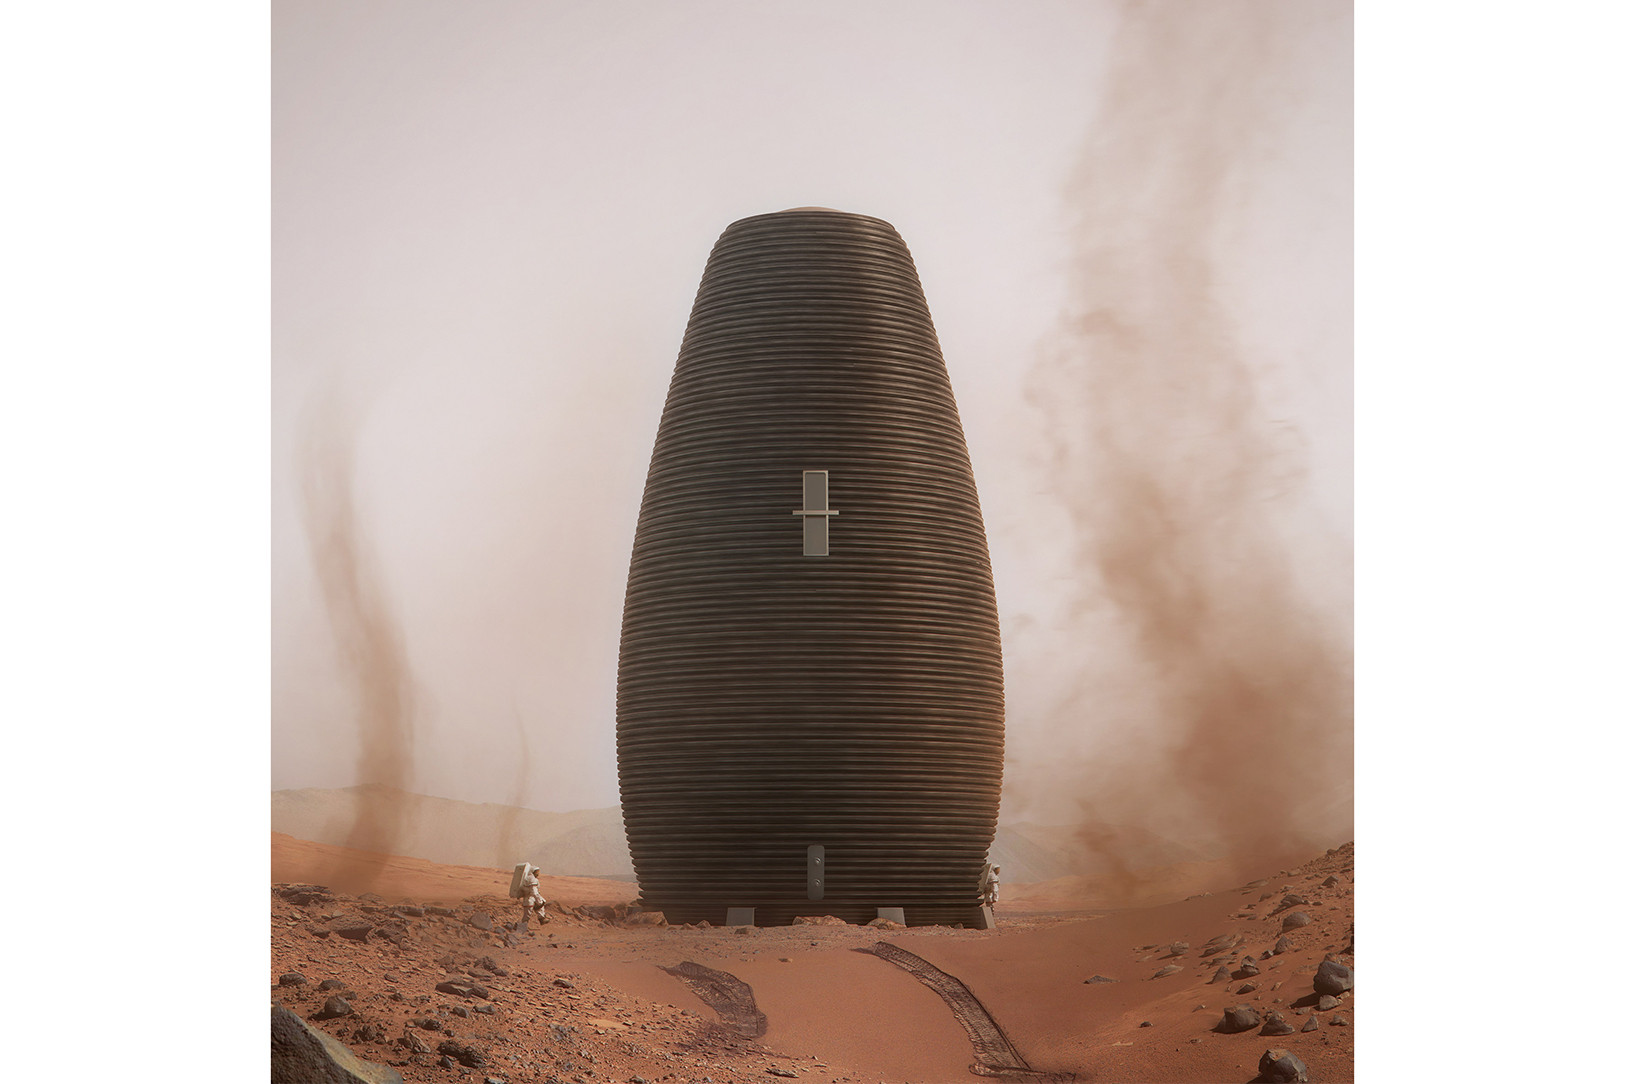 nasa-3d-printed-mars-habitat-competition-winners-4